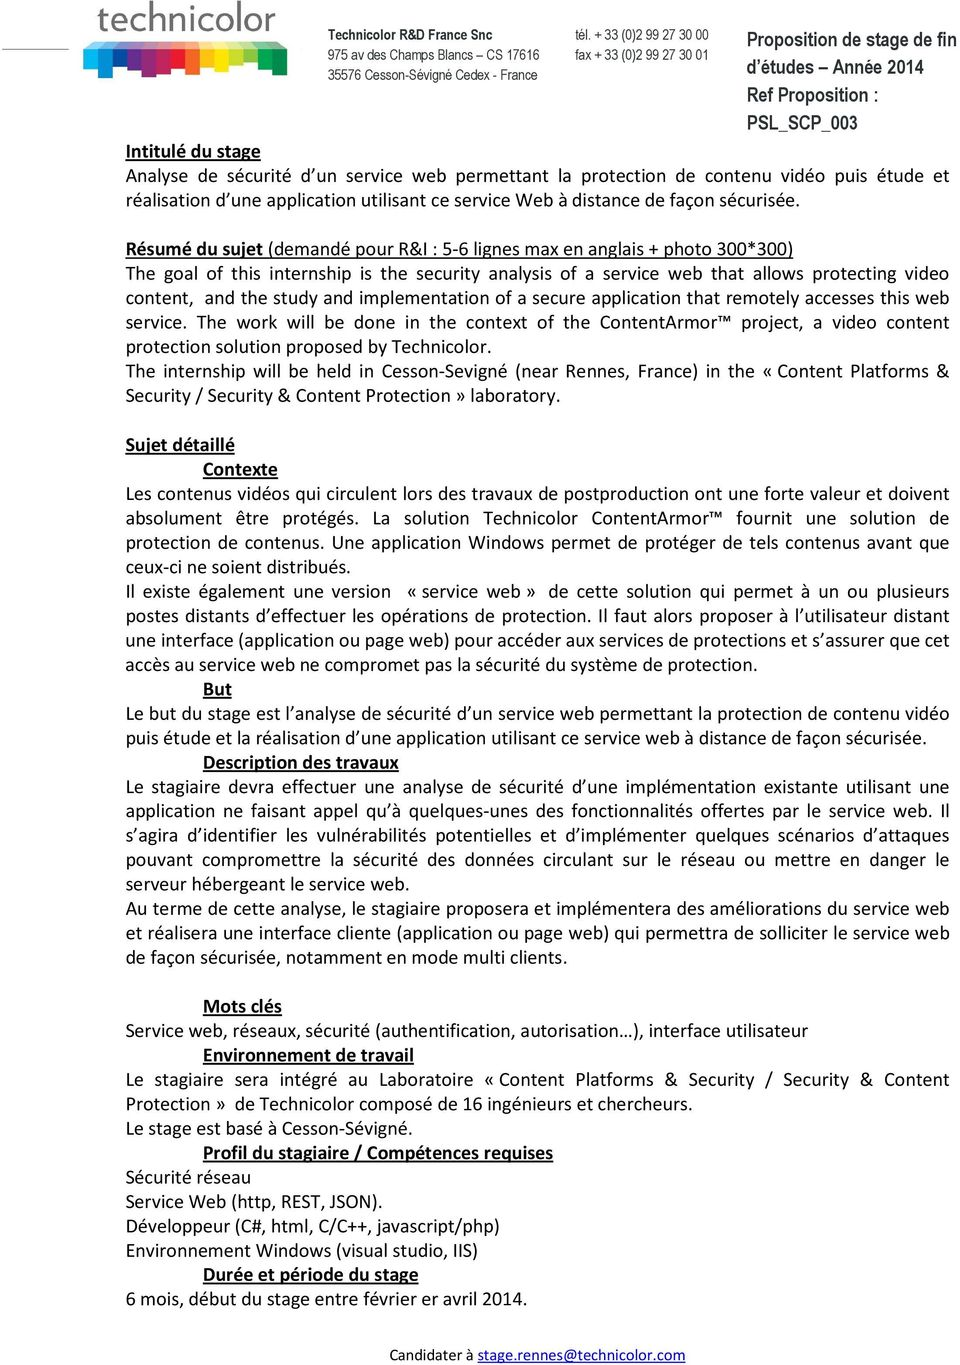 Résumé du sujet (demandé pour R&I : 5-6 lignes max en anglais + photo 300*300) The goal of this internship is the security analysis of a service web that allows protecting video content, and the